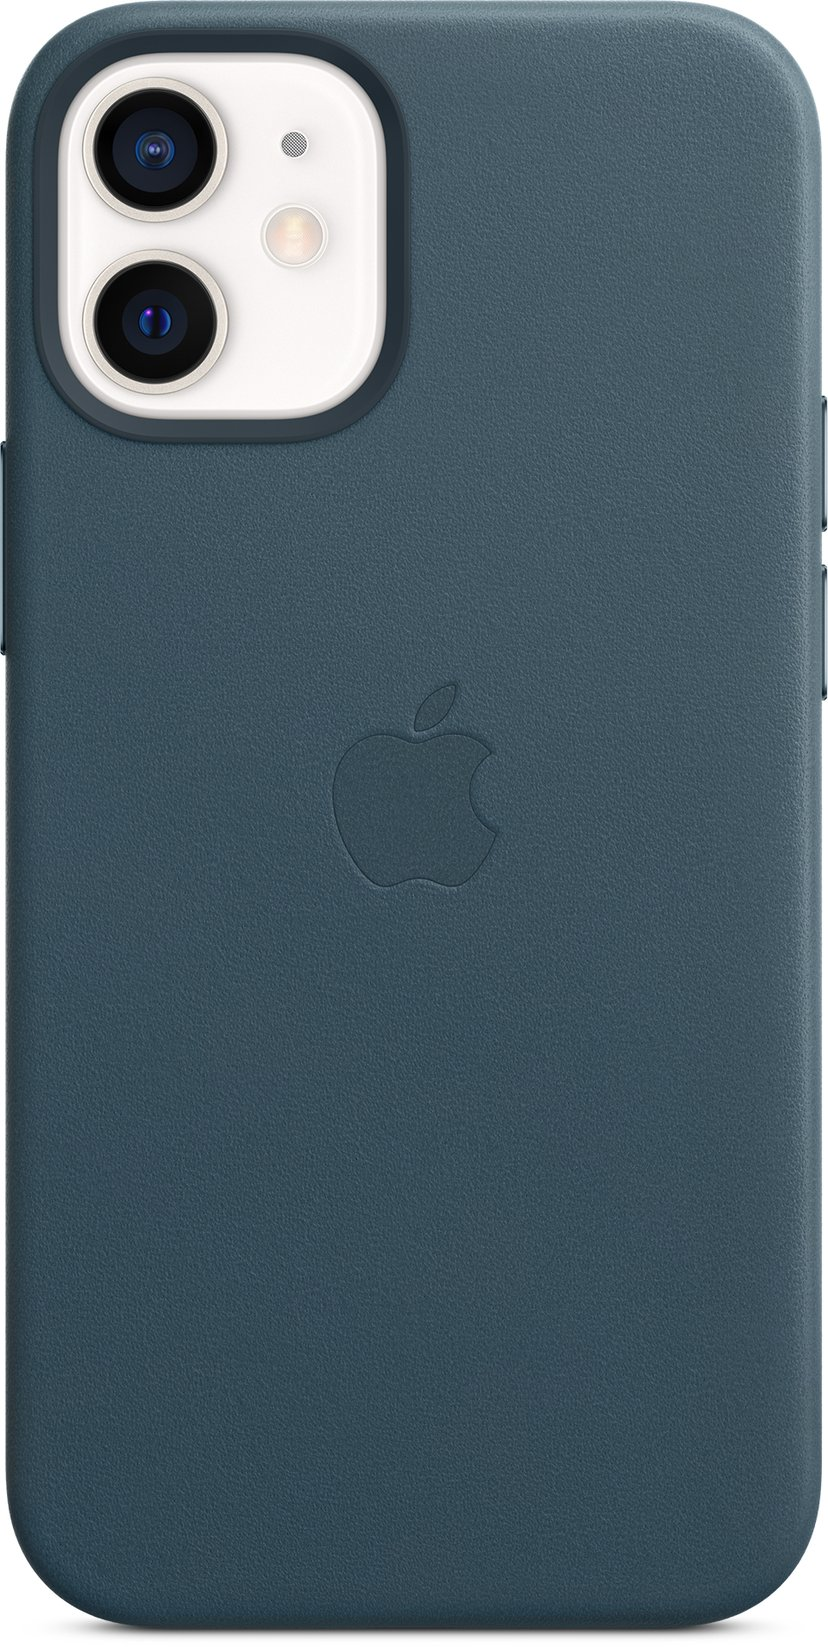 Apple Leather Case with MagSafe iPhone 12 Mini Baltisk blå